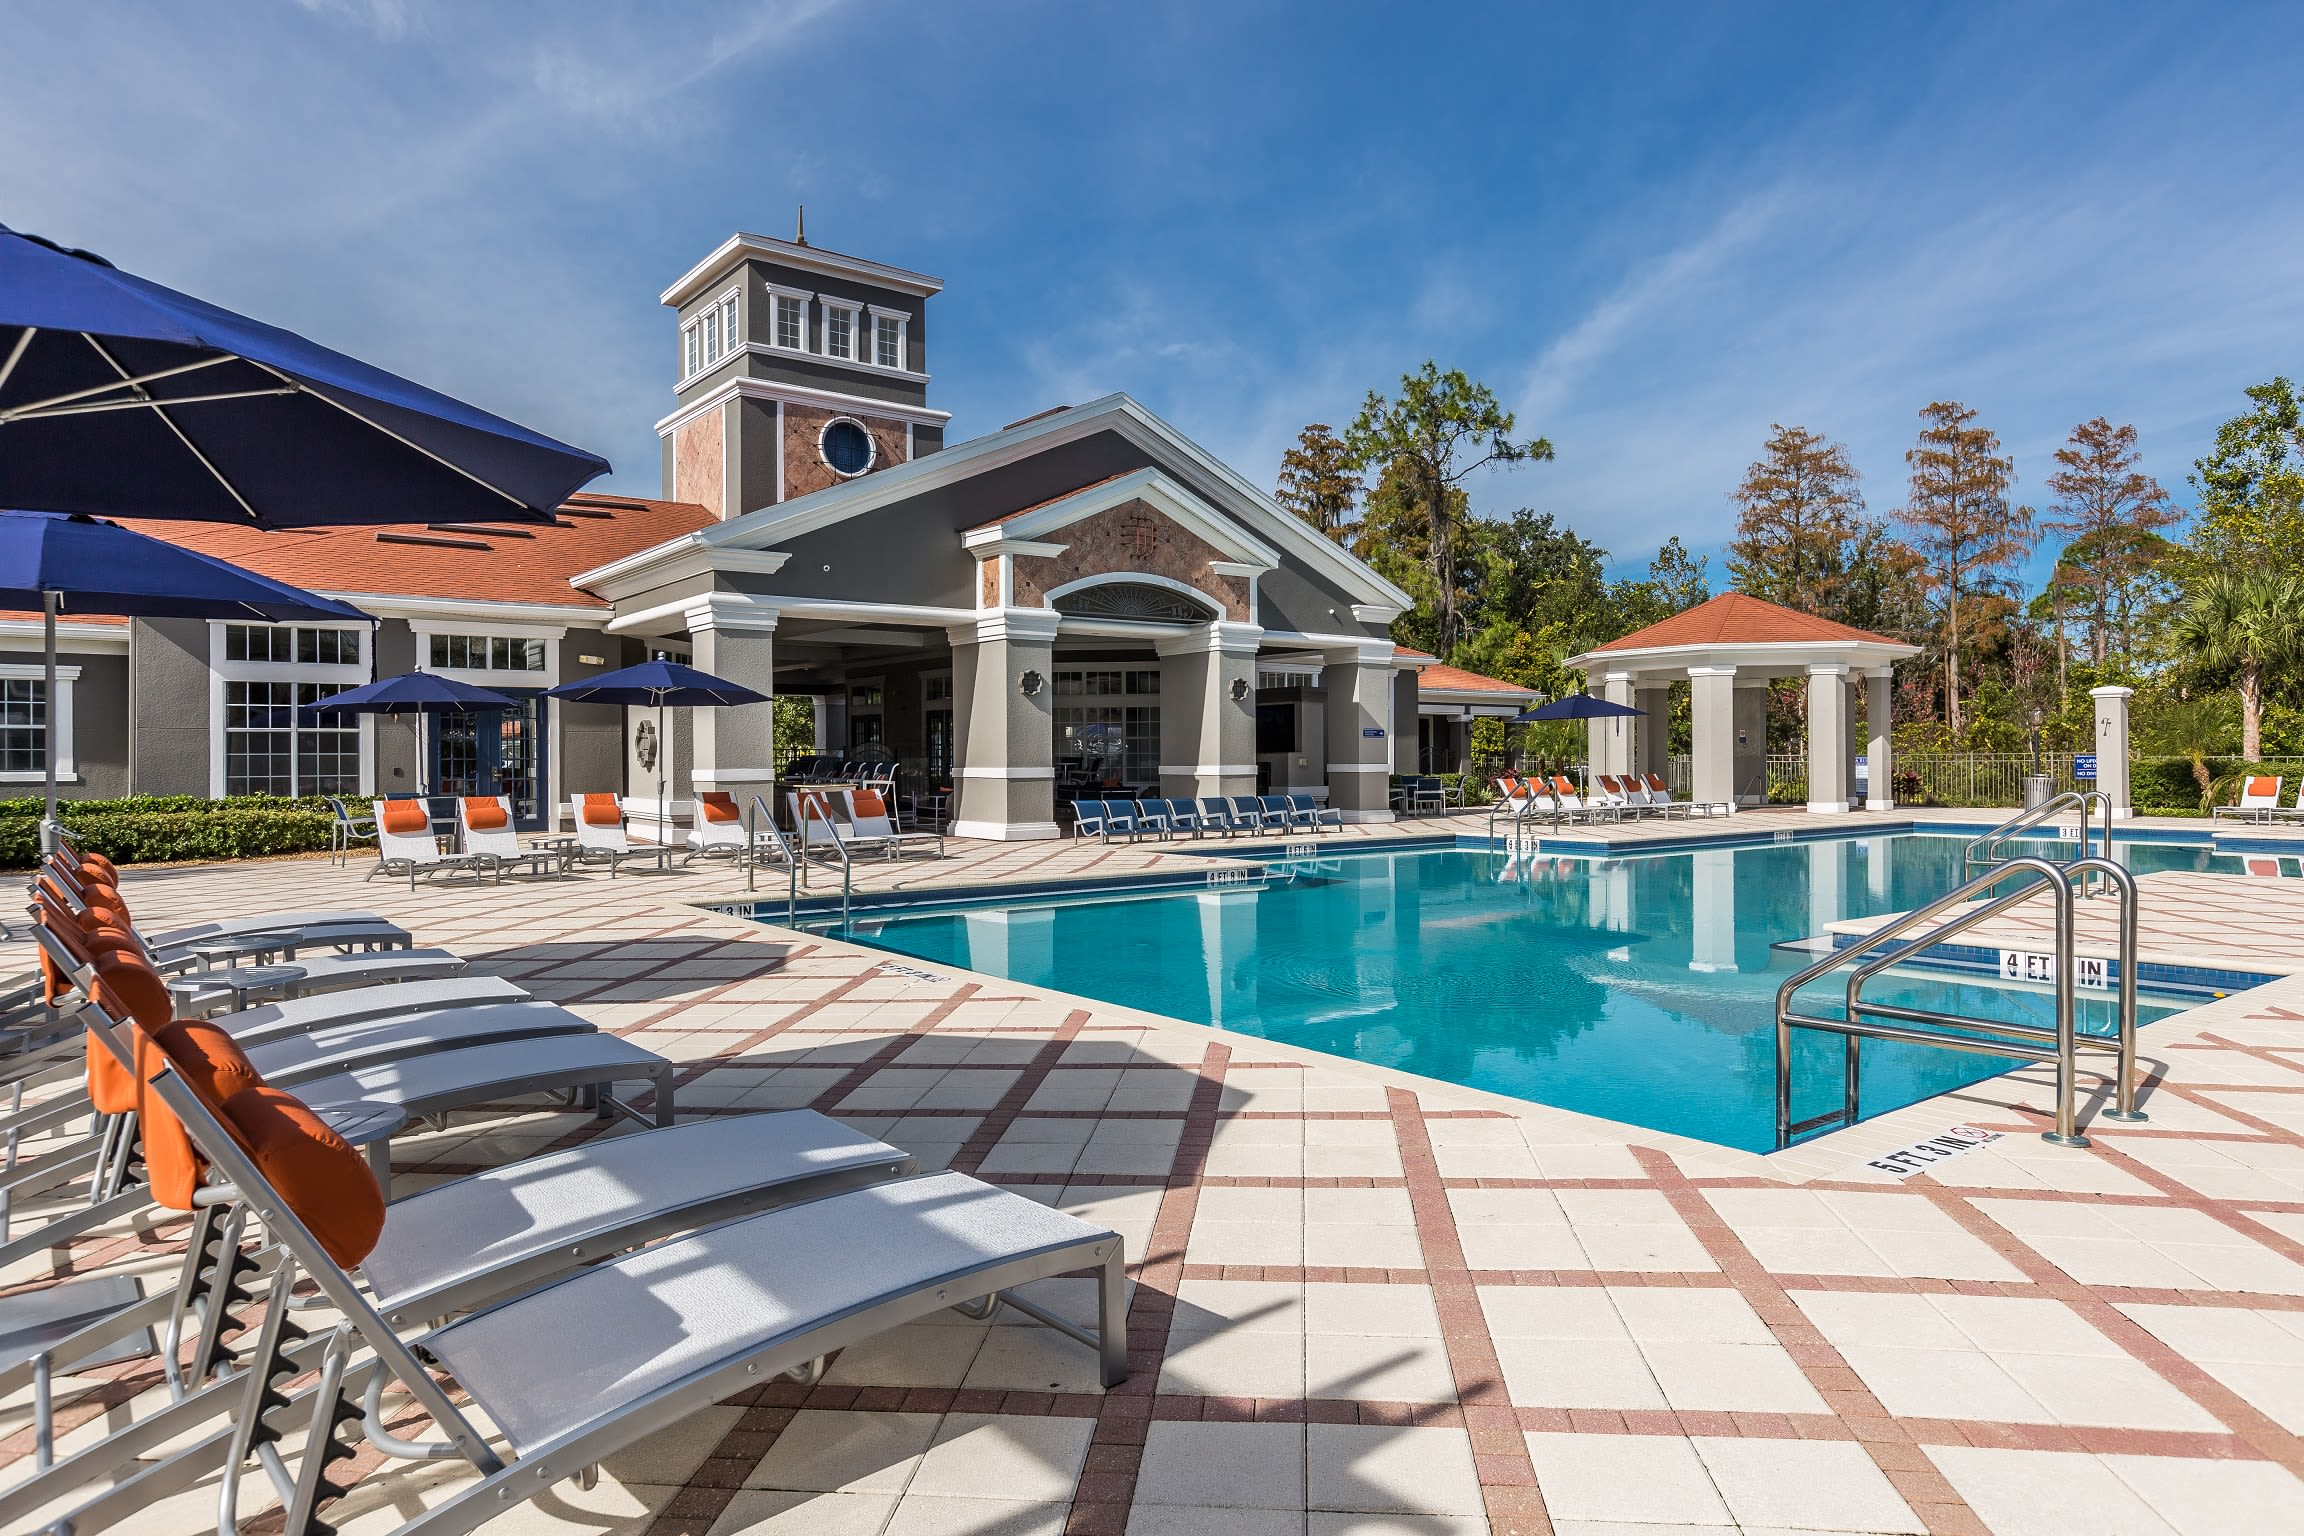 Luxury swimming pool at The Aspect in Kissimmee, Florida